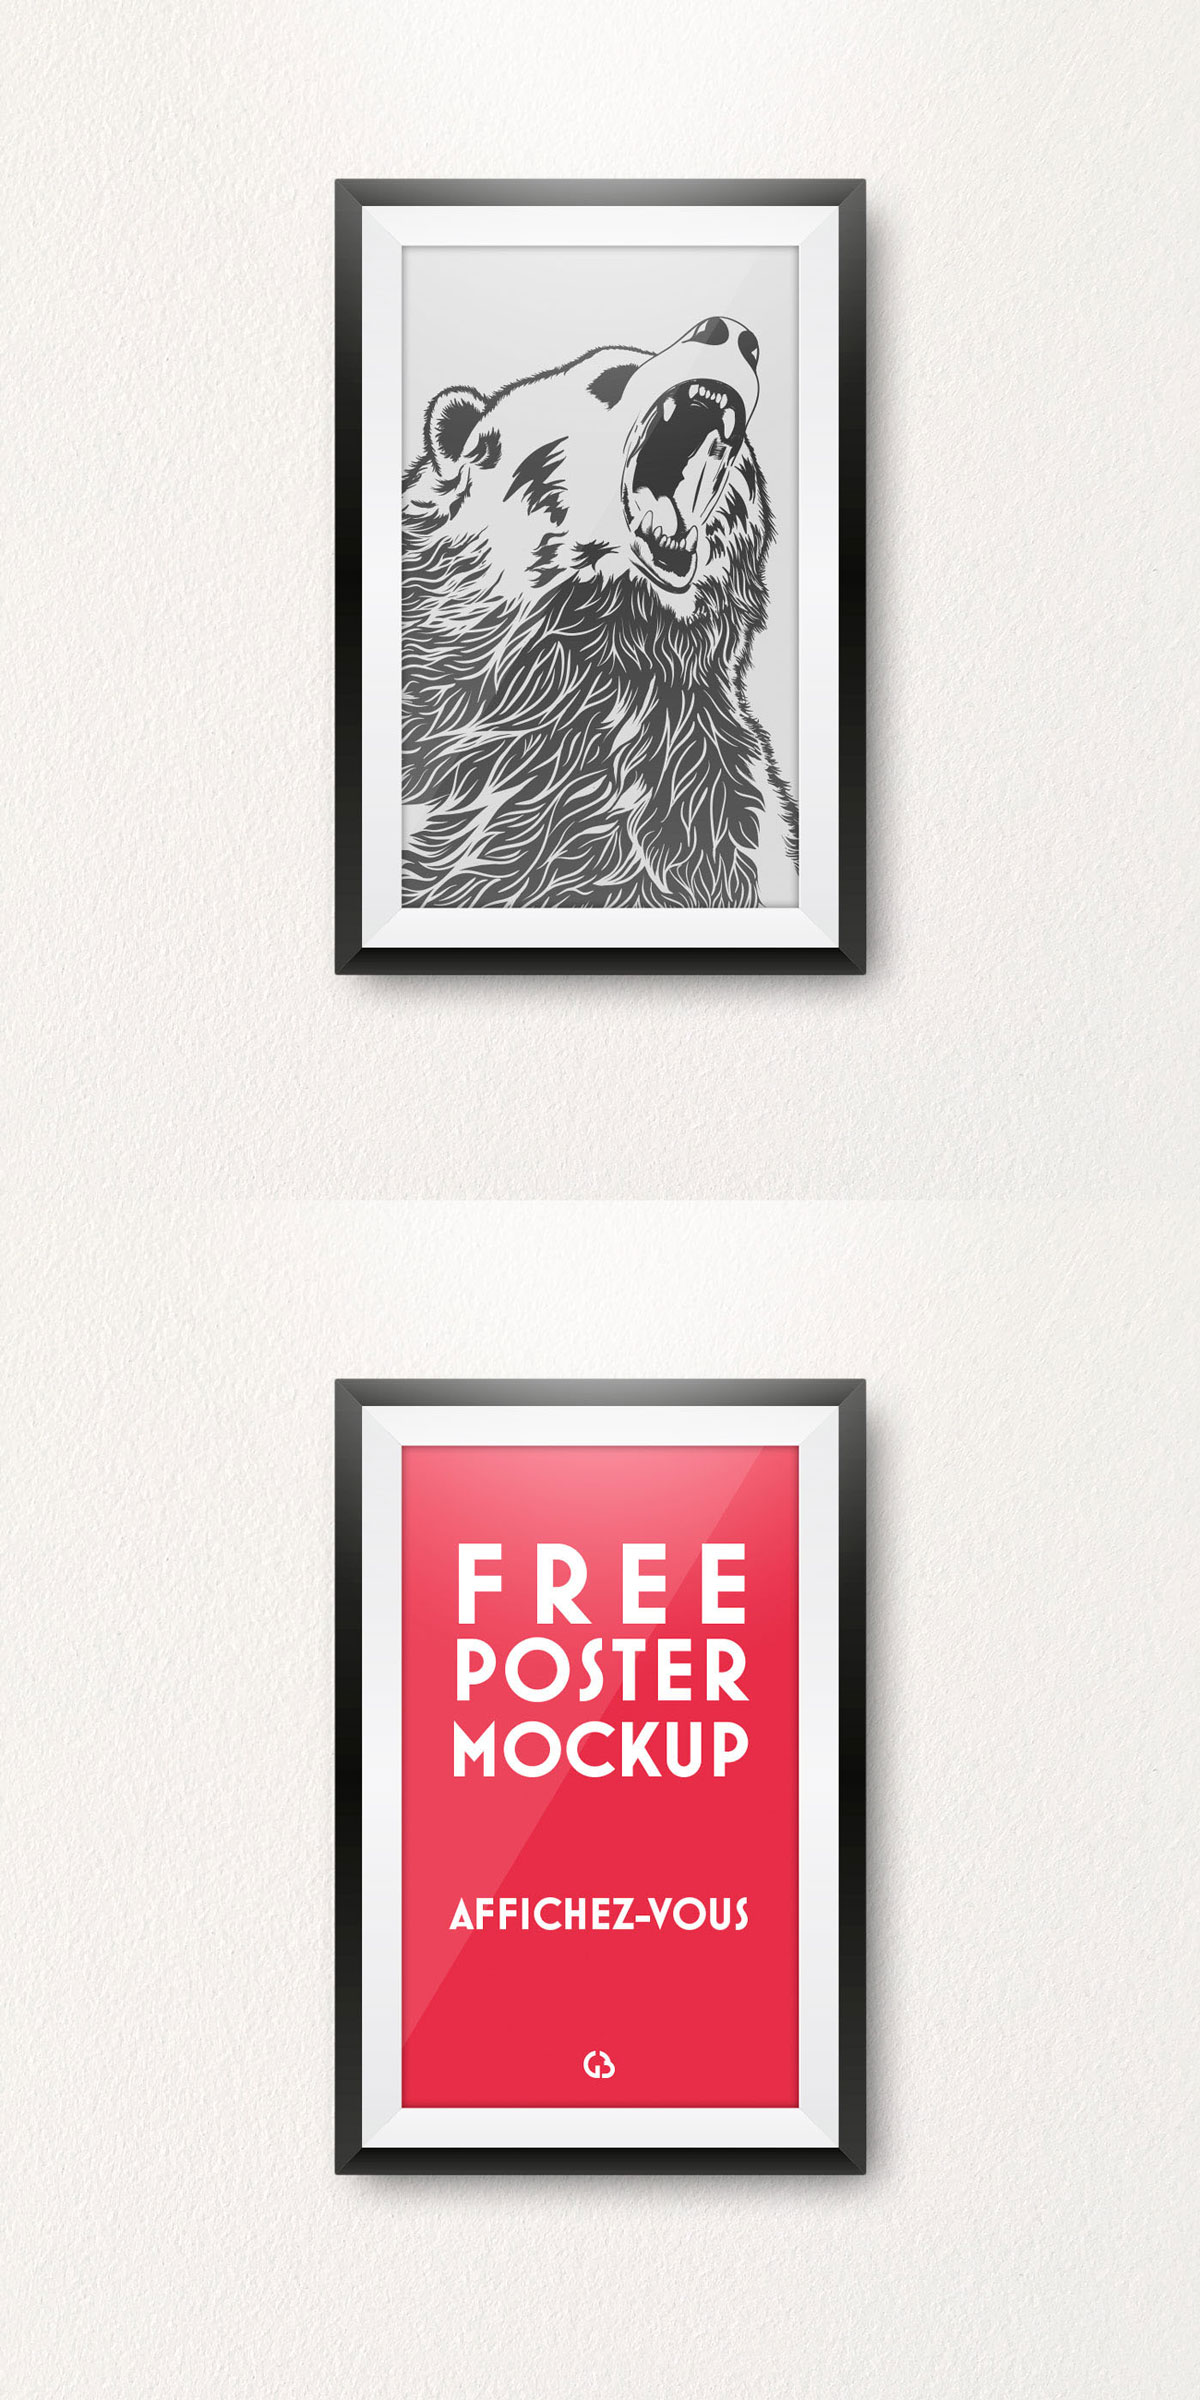 Vertical-Poster-Mockup-To-Showcase-Creative-Artworks-600